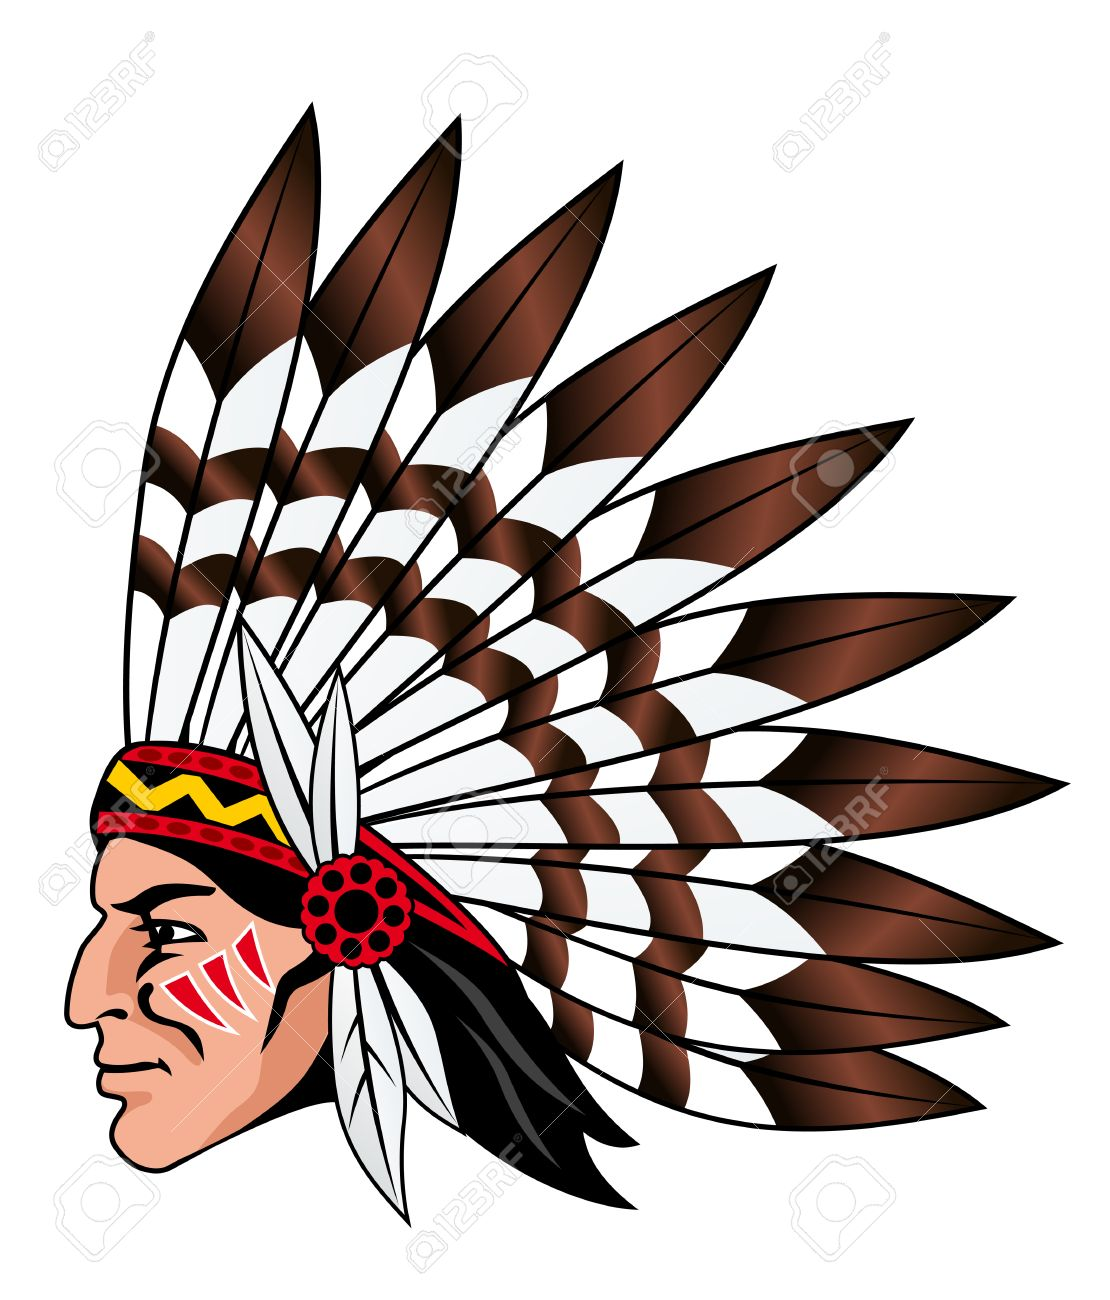 Indian clipart sad Head image american american head